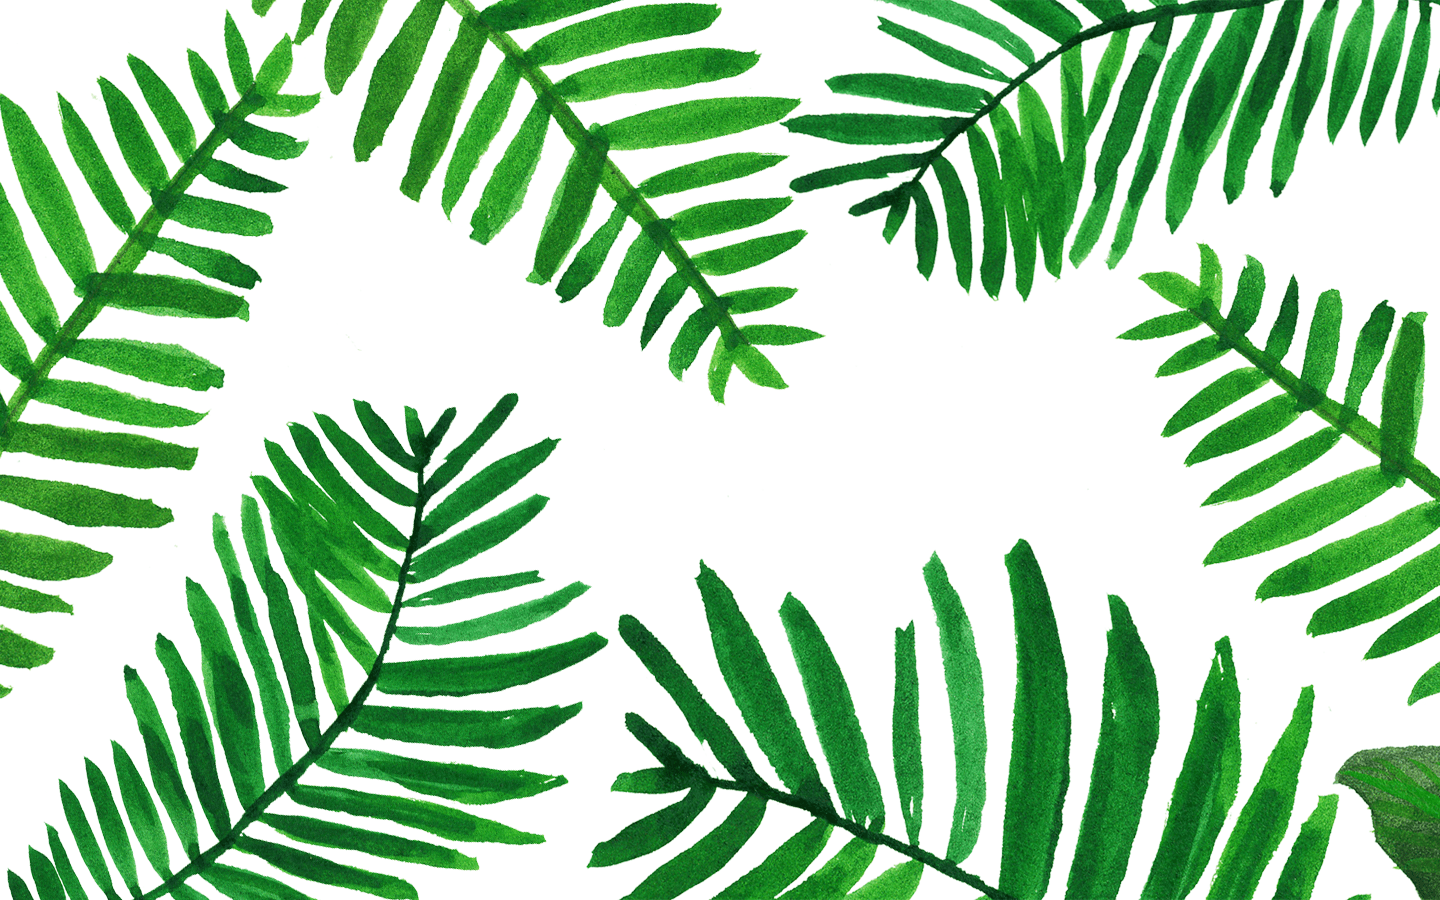 Palm Leaves Wallpaper From Www Palm Leaves Background Desktop 116181 Hd Wallpaper Backgrounds Download Find the perfect tropical leaves background stock illustrations from getty images. palm leaves background desktop